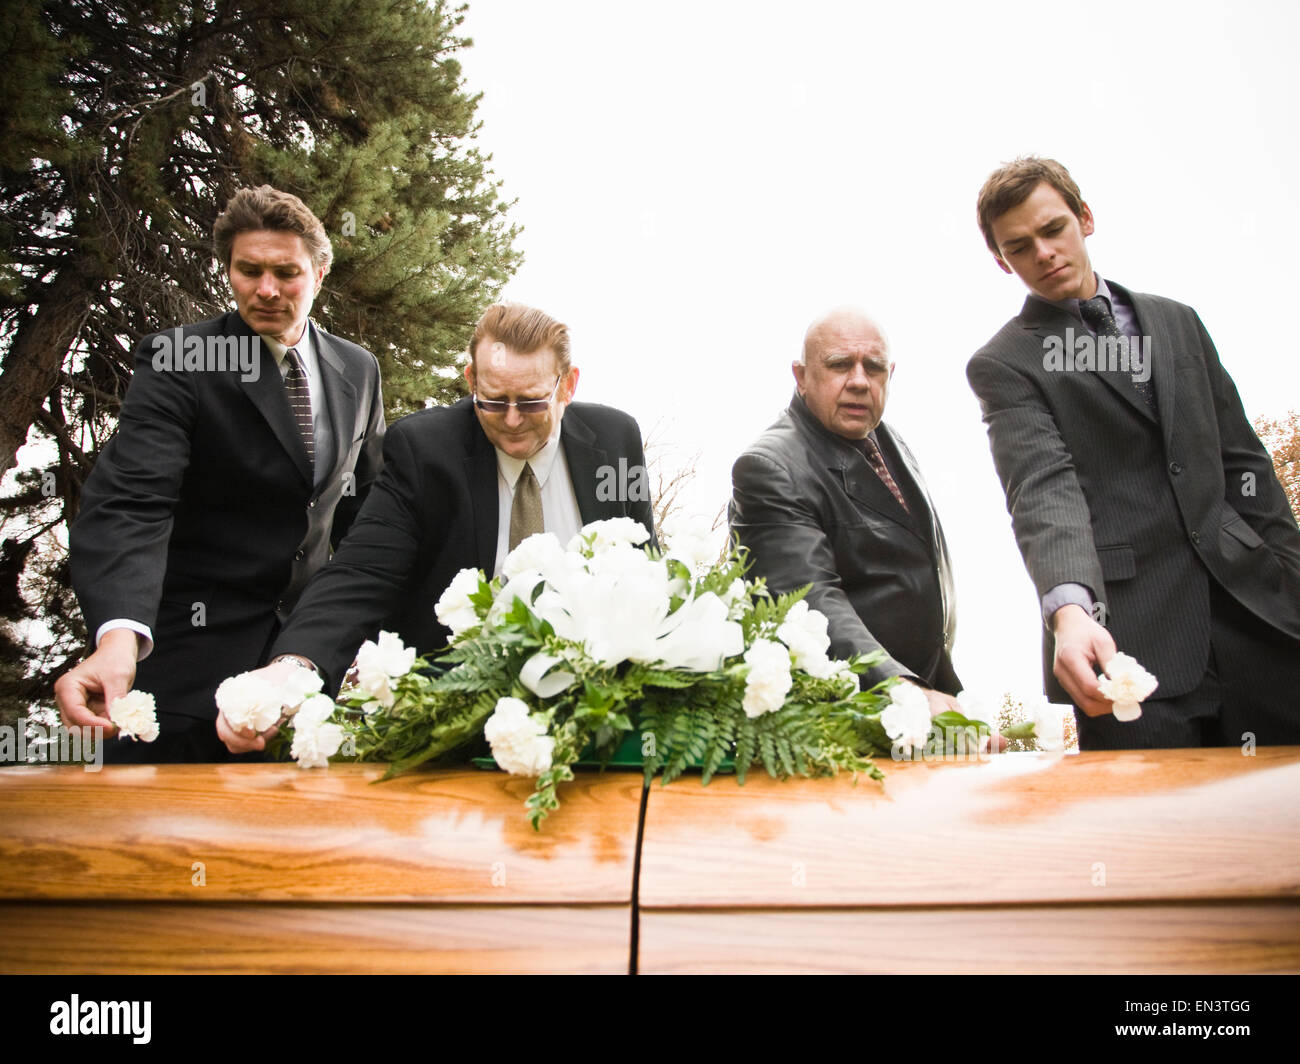 People at a funeral in a cemetery stock photo 81834384 alamy people at a funeral in a cemetery izmirmasajfo